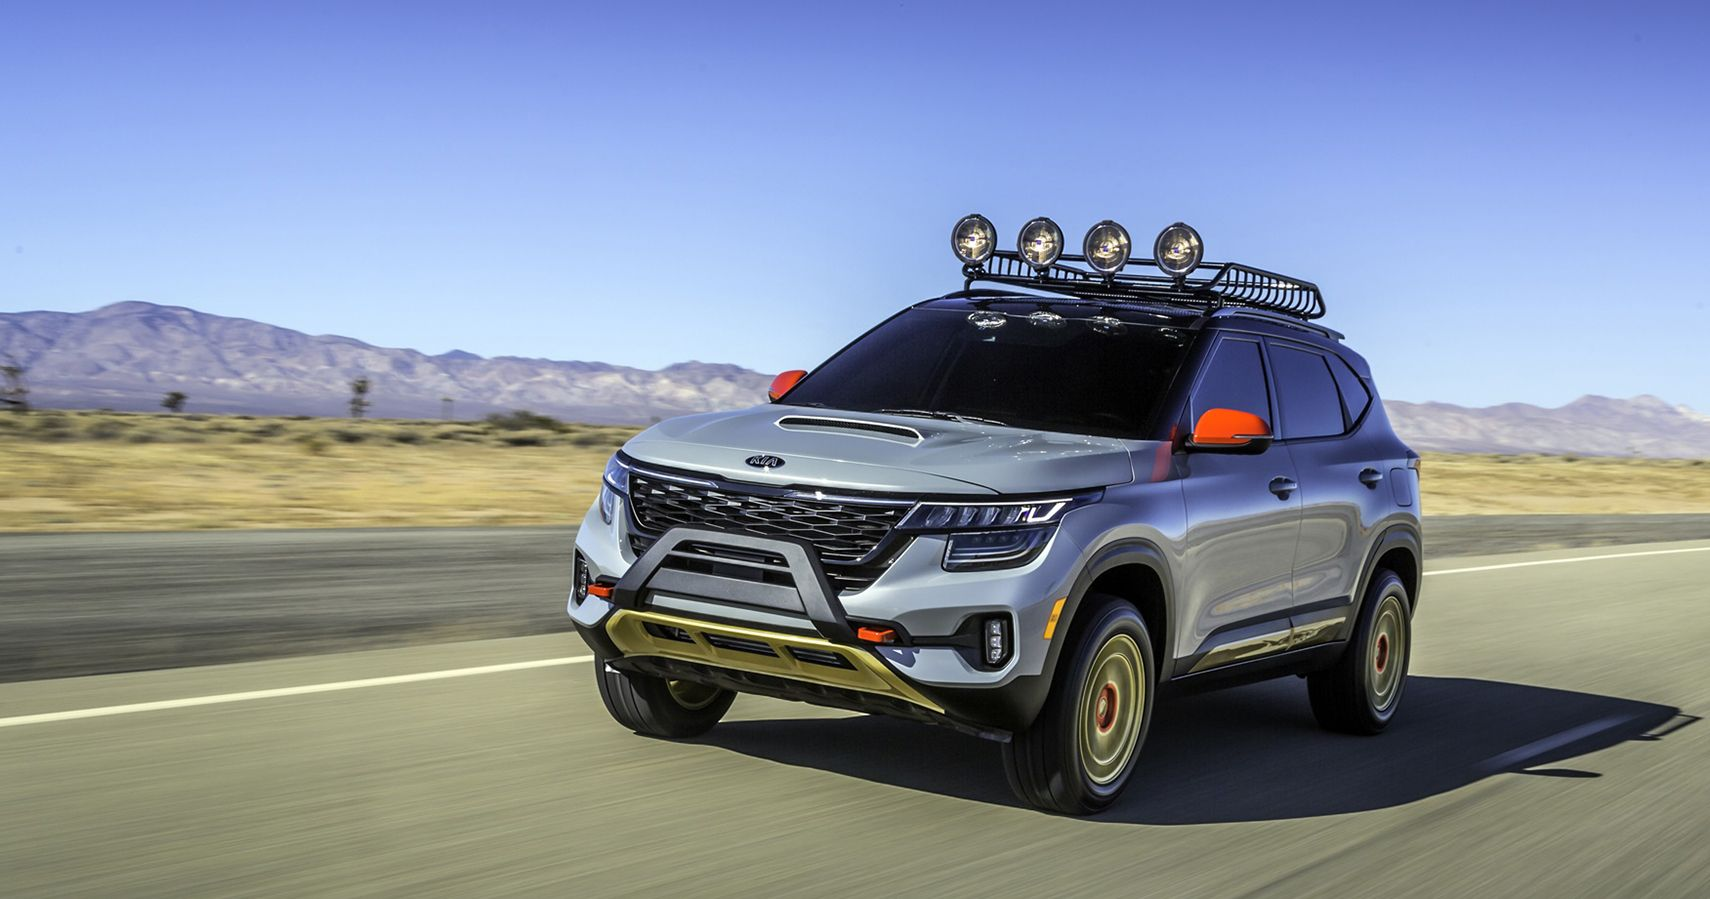 Fast Lane Motors >> These 2 Seltos X-Line Concepts Take Kia's Cutting Edge SUV To New Heights